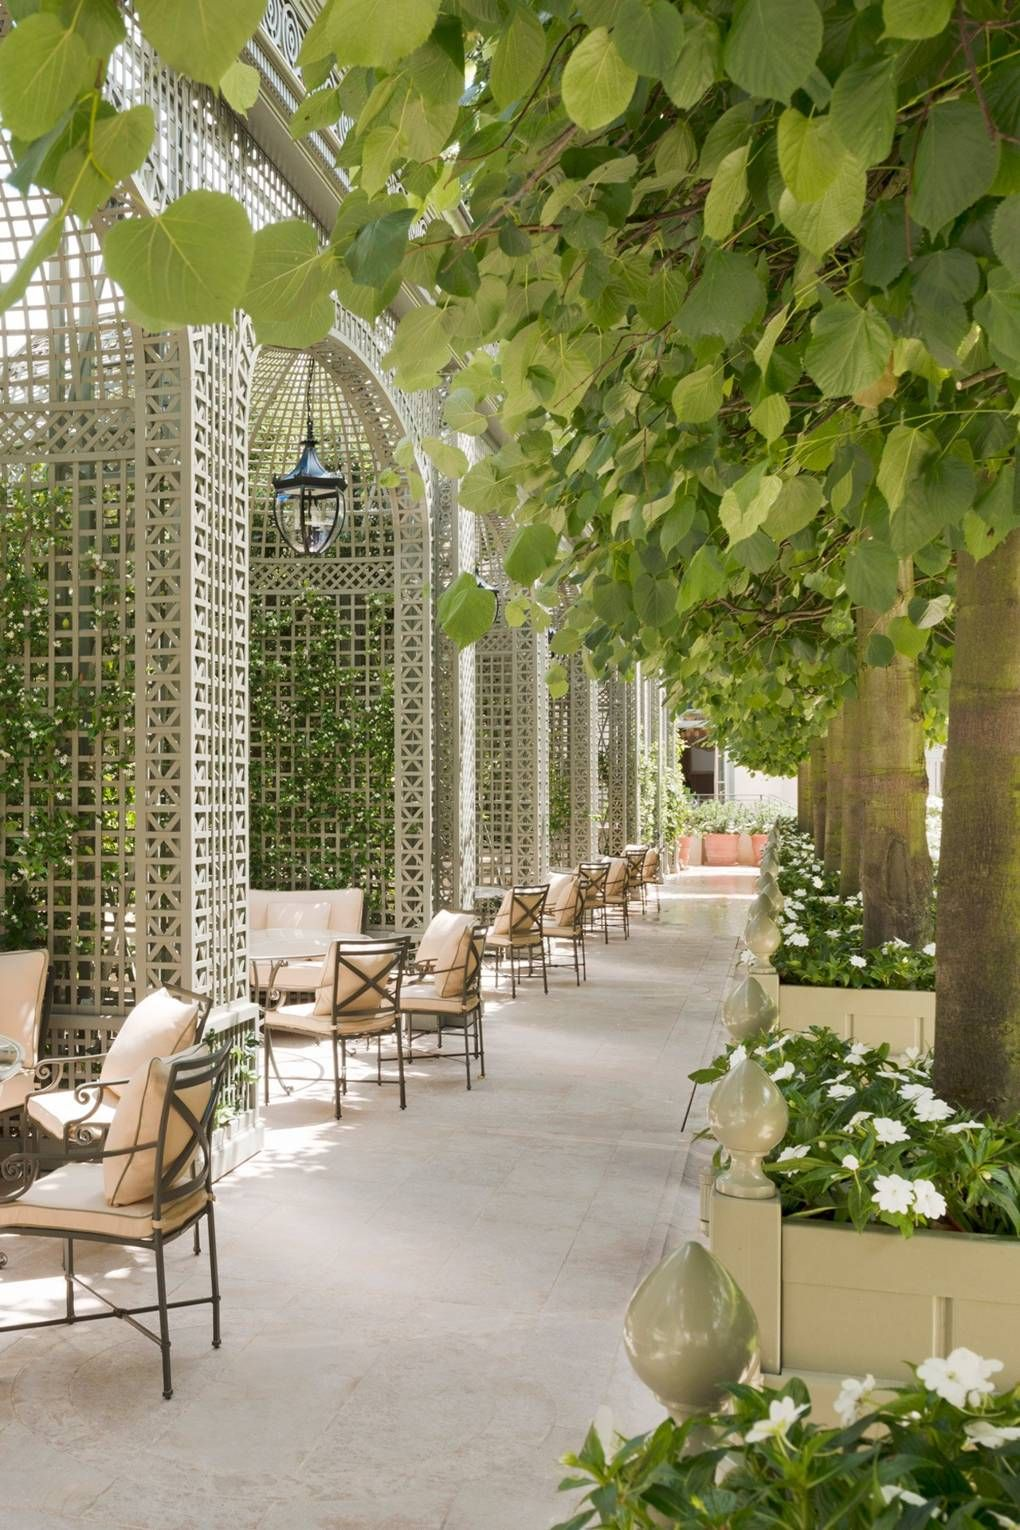 The best hotels in Paris is part of The ritz paris, Best paris hotels, Hotel room design, Paris hotels, Hotel decor, Outdoor restaurant - Condé Nast Traveller editors reveal their pick of the best hotels in Paris, from the coolest new boutique hotels in the city to the grandest grand dames